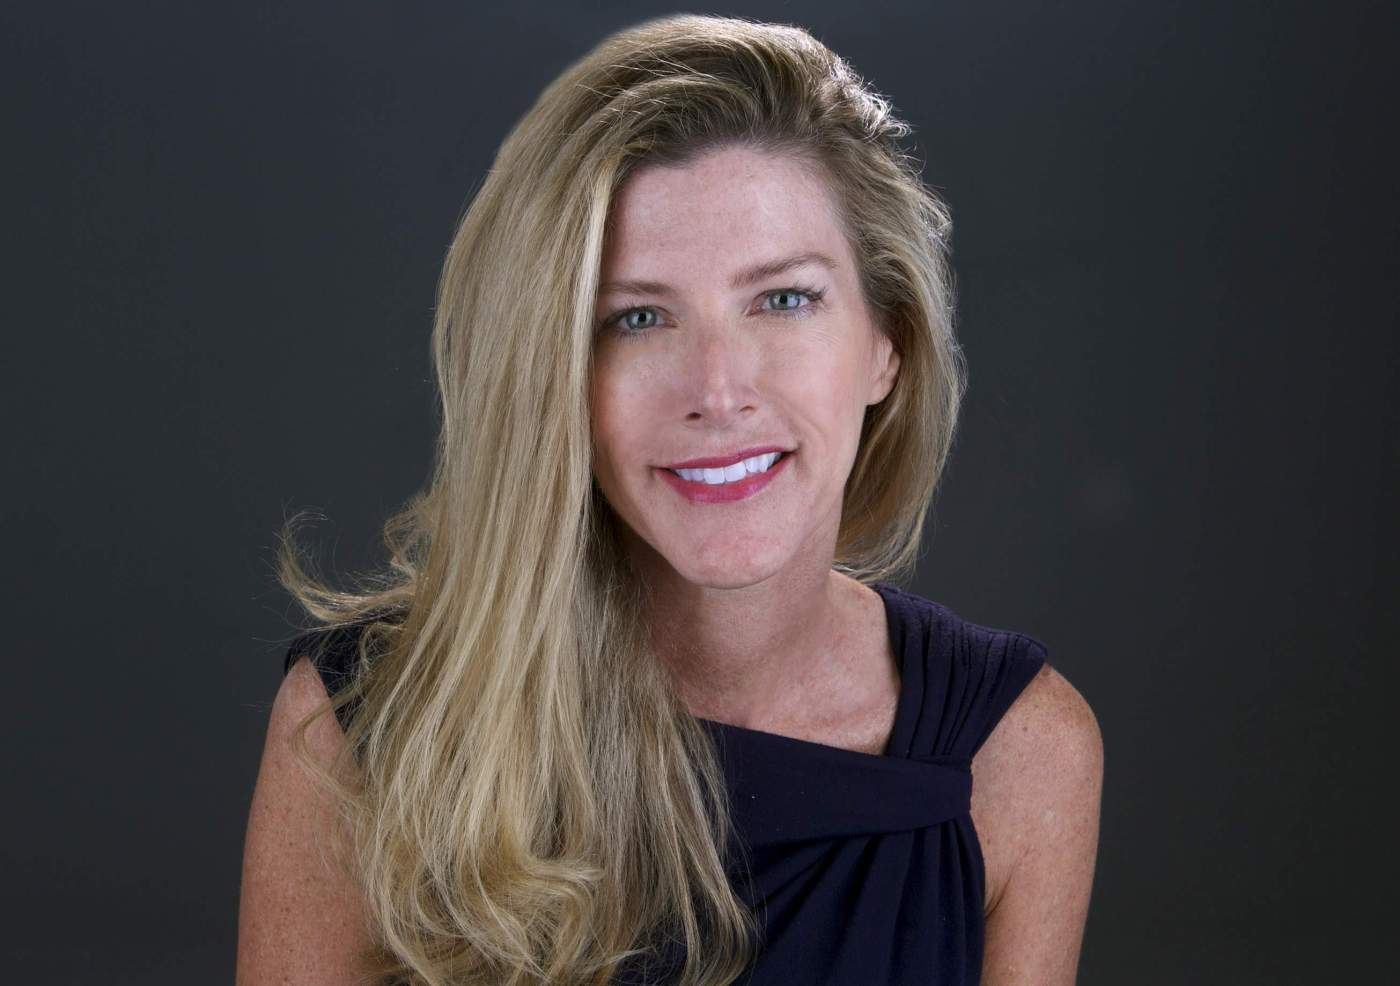 LAURA REILEY - Tampa Bay Times Food Critic